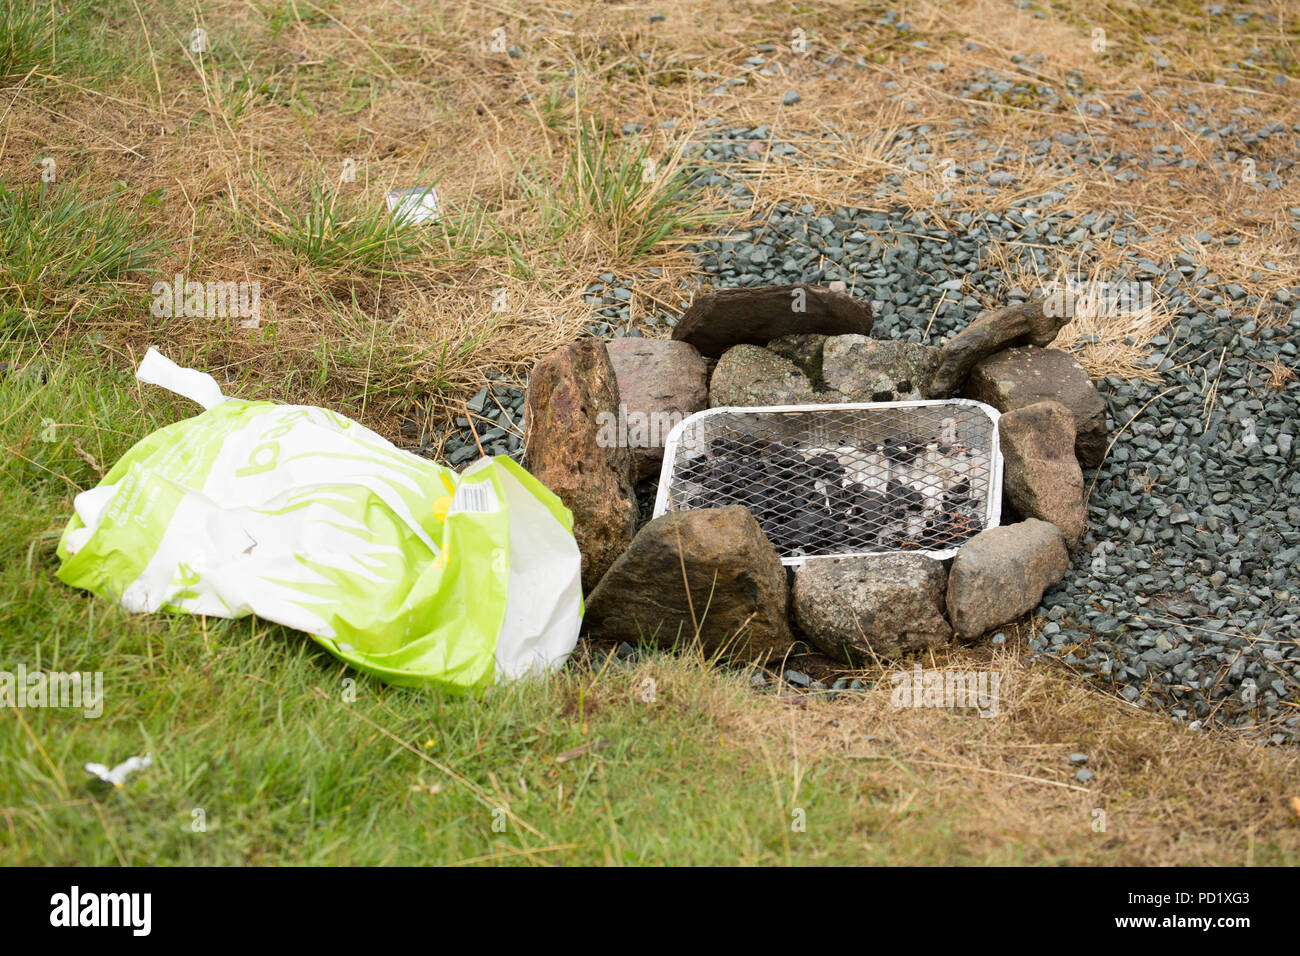 A disposable barbecue and supermarket carrier bag left beside a car park next to the Kirkstone Pass in The Lake District Cumbria England UK GB. - Stock Image